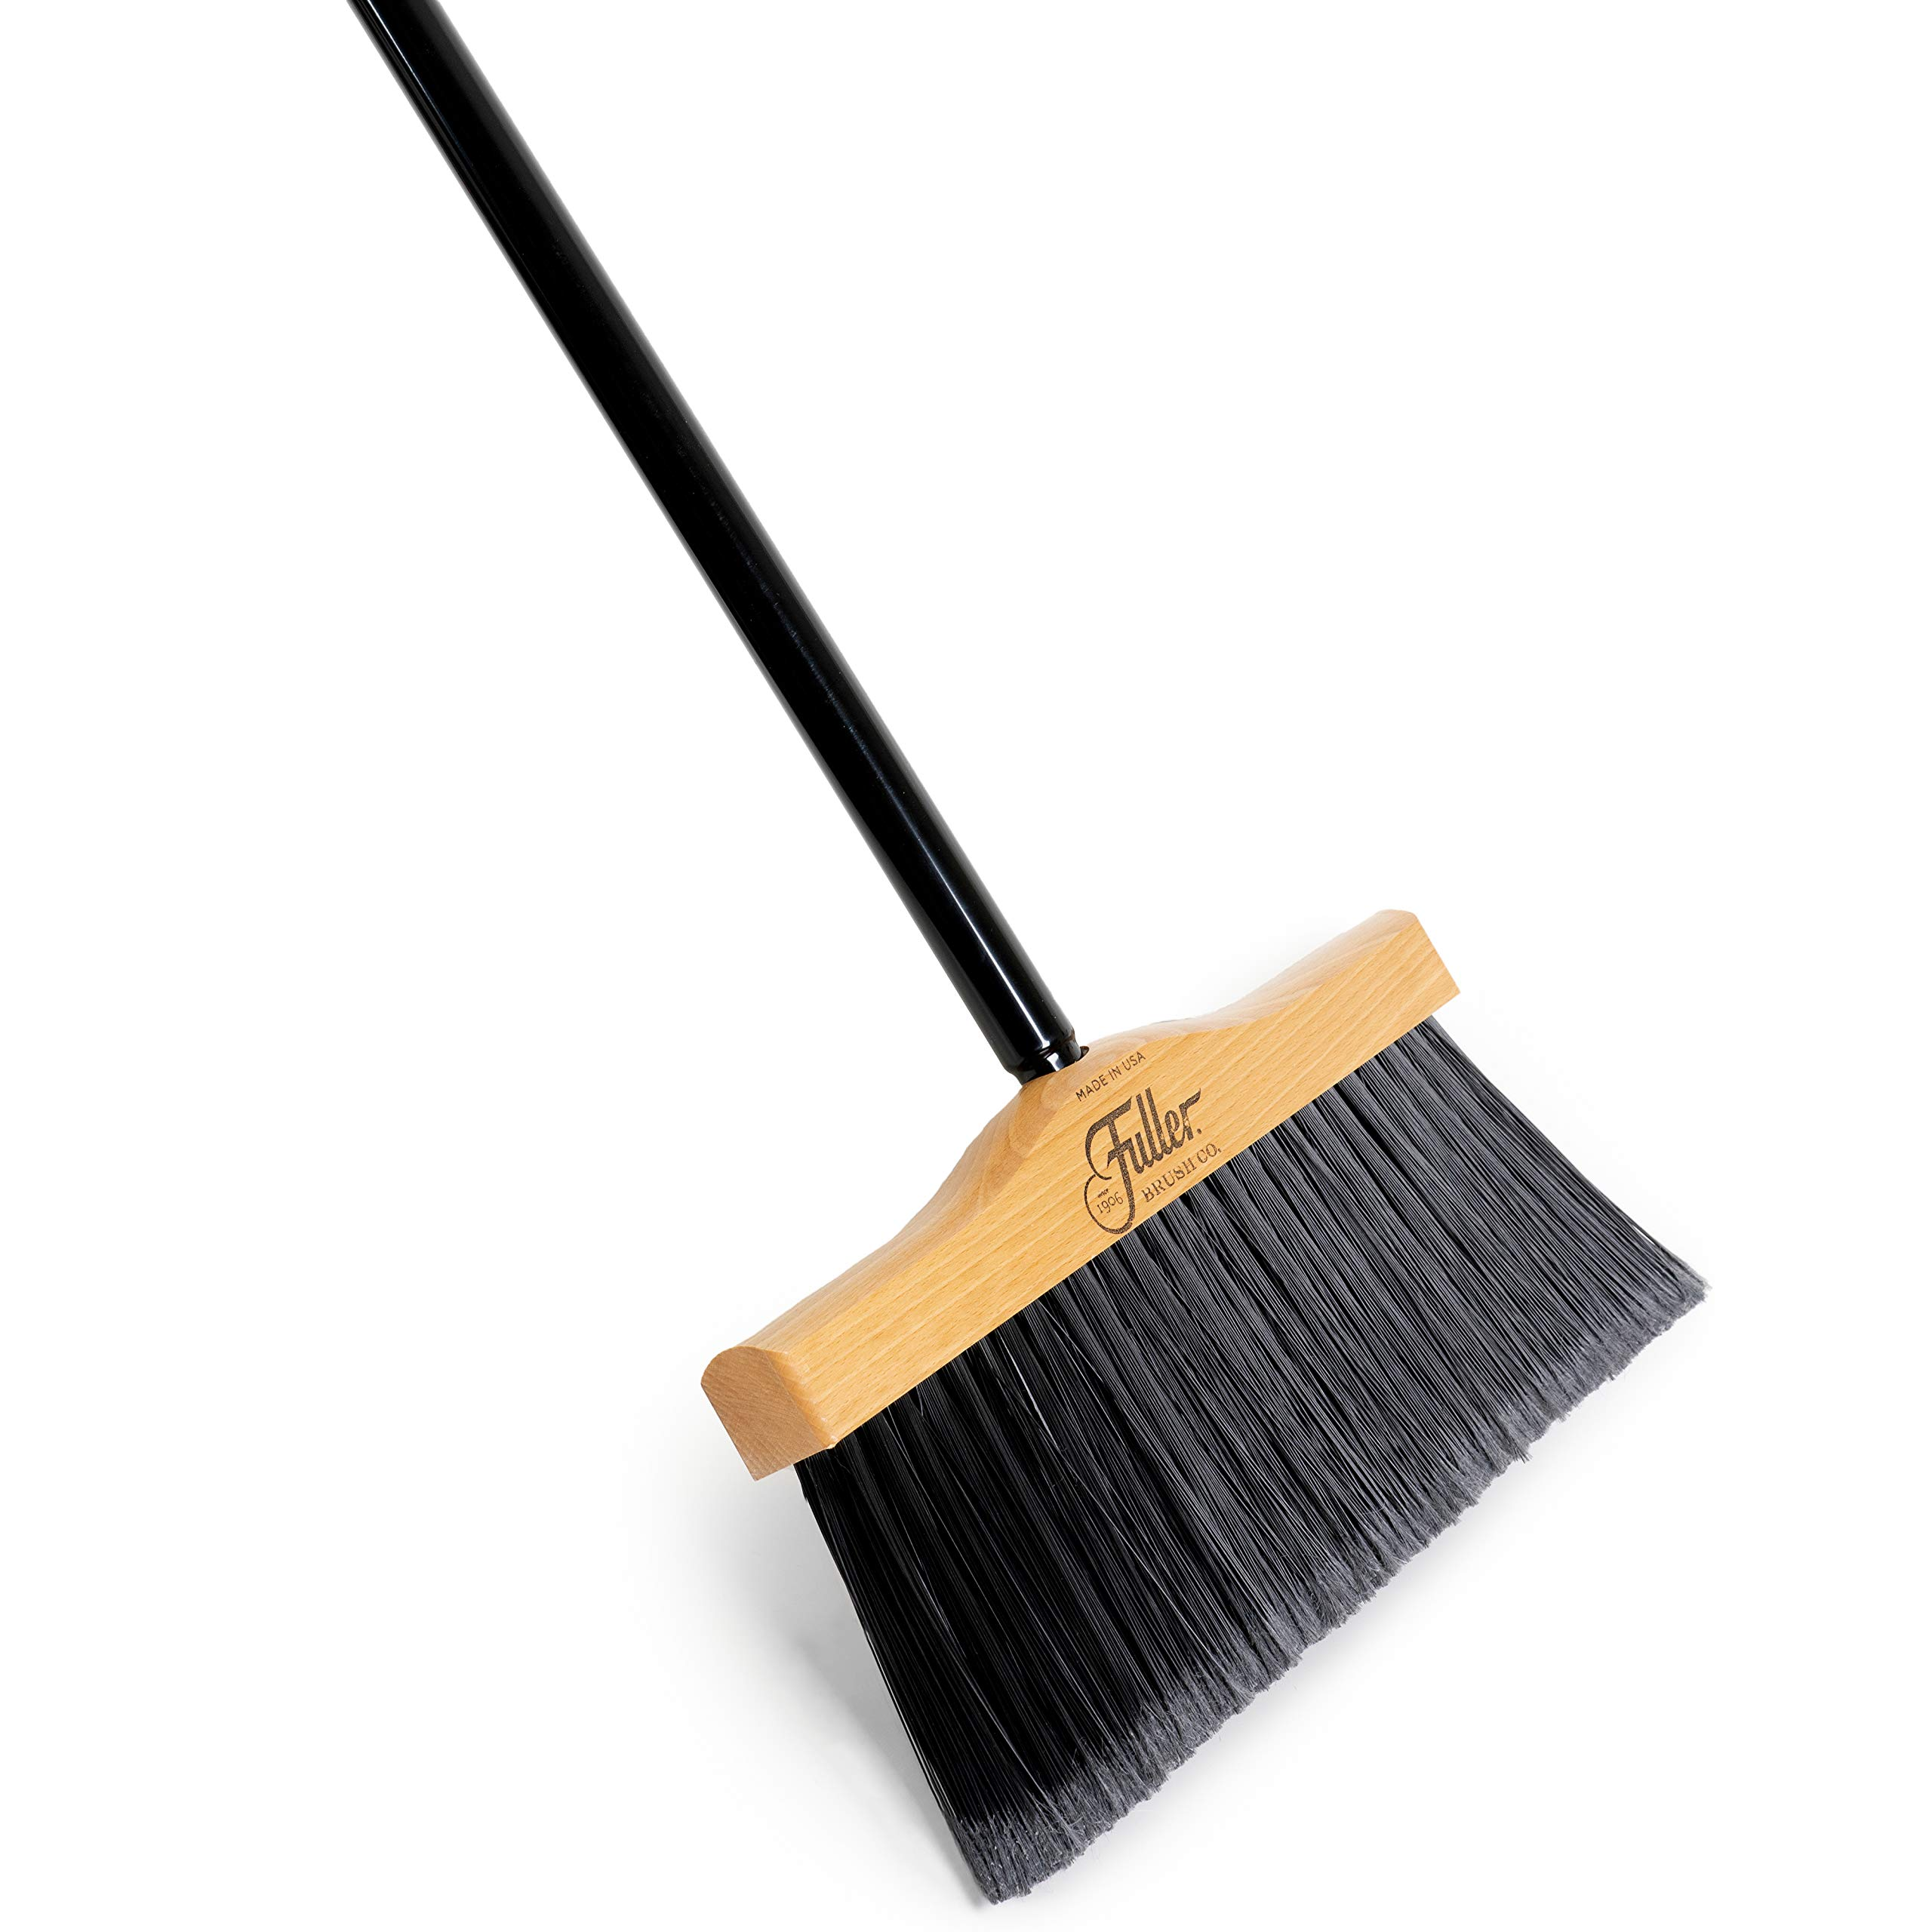 Fuller Brush Indoor/Outdoor Broom - Heavy Duty Wide Wooden Sweeper w/Long Bristles - Commercial Floor Brush for Salon, Shop, Kitchen & Garage - 12-inch Wide by Fuller Brush